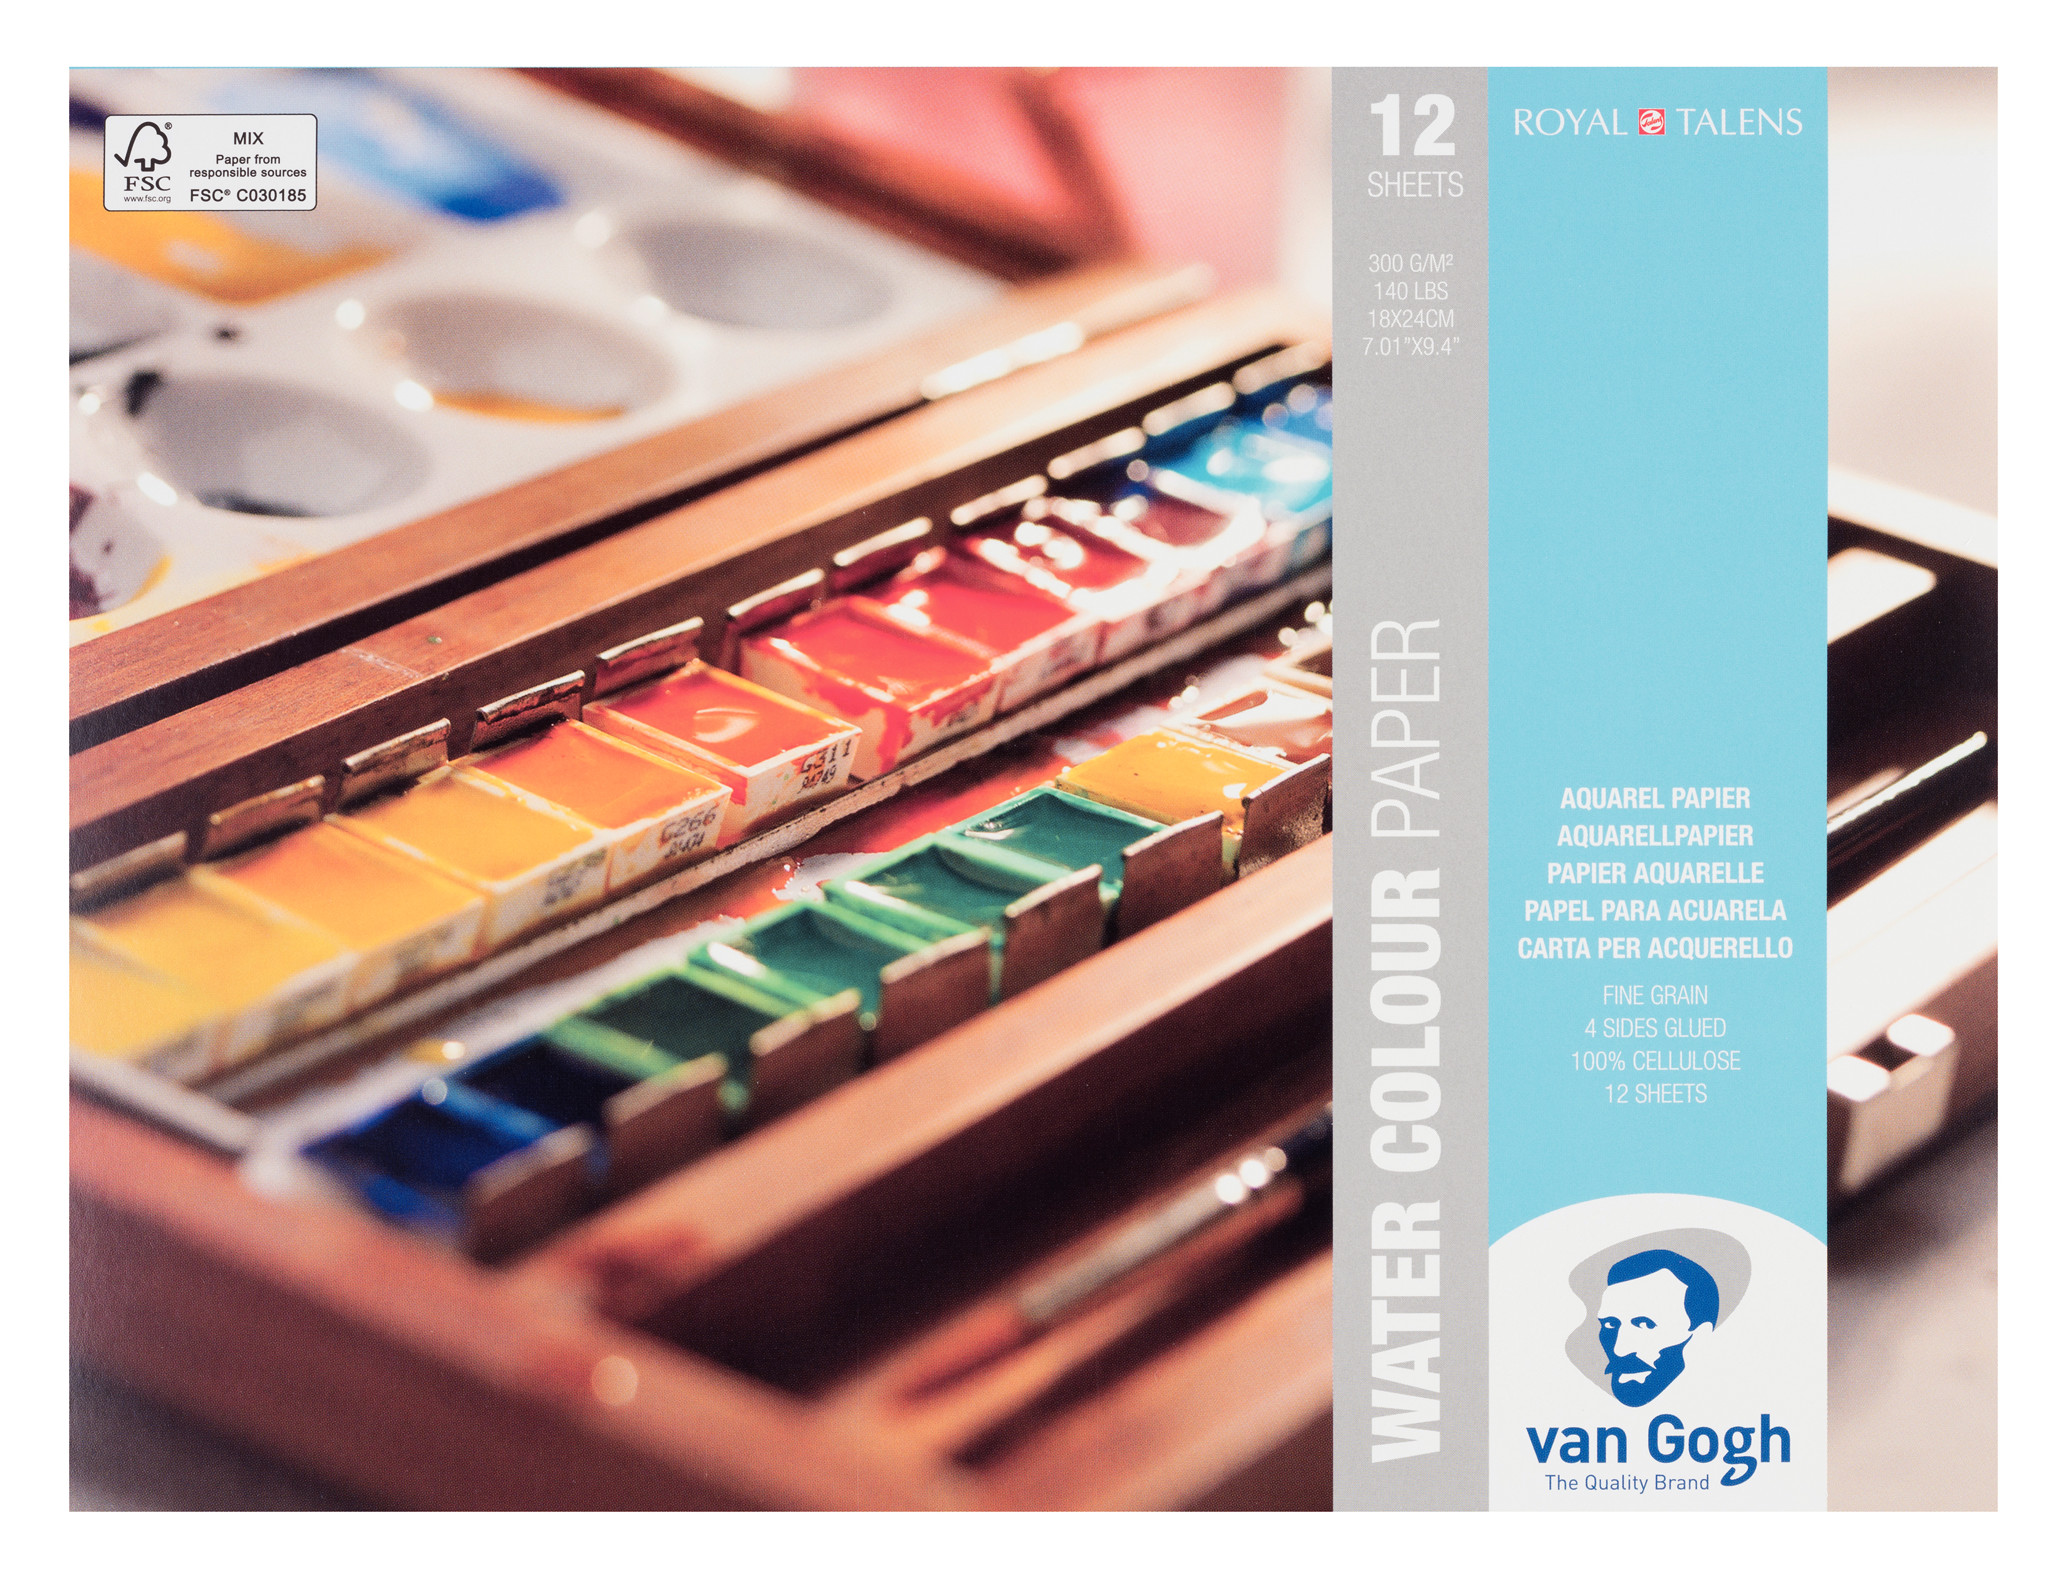 Van Gogh Water Colour Paper Block, 12 Sheets, 300g/140lb., size 18 x 24cm / 7.01 x 9.4